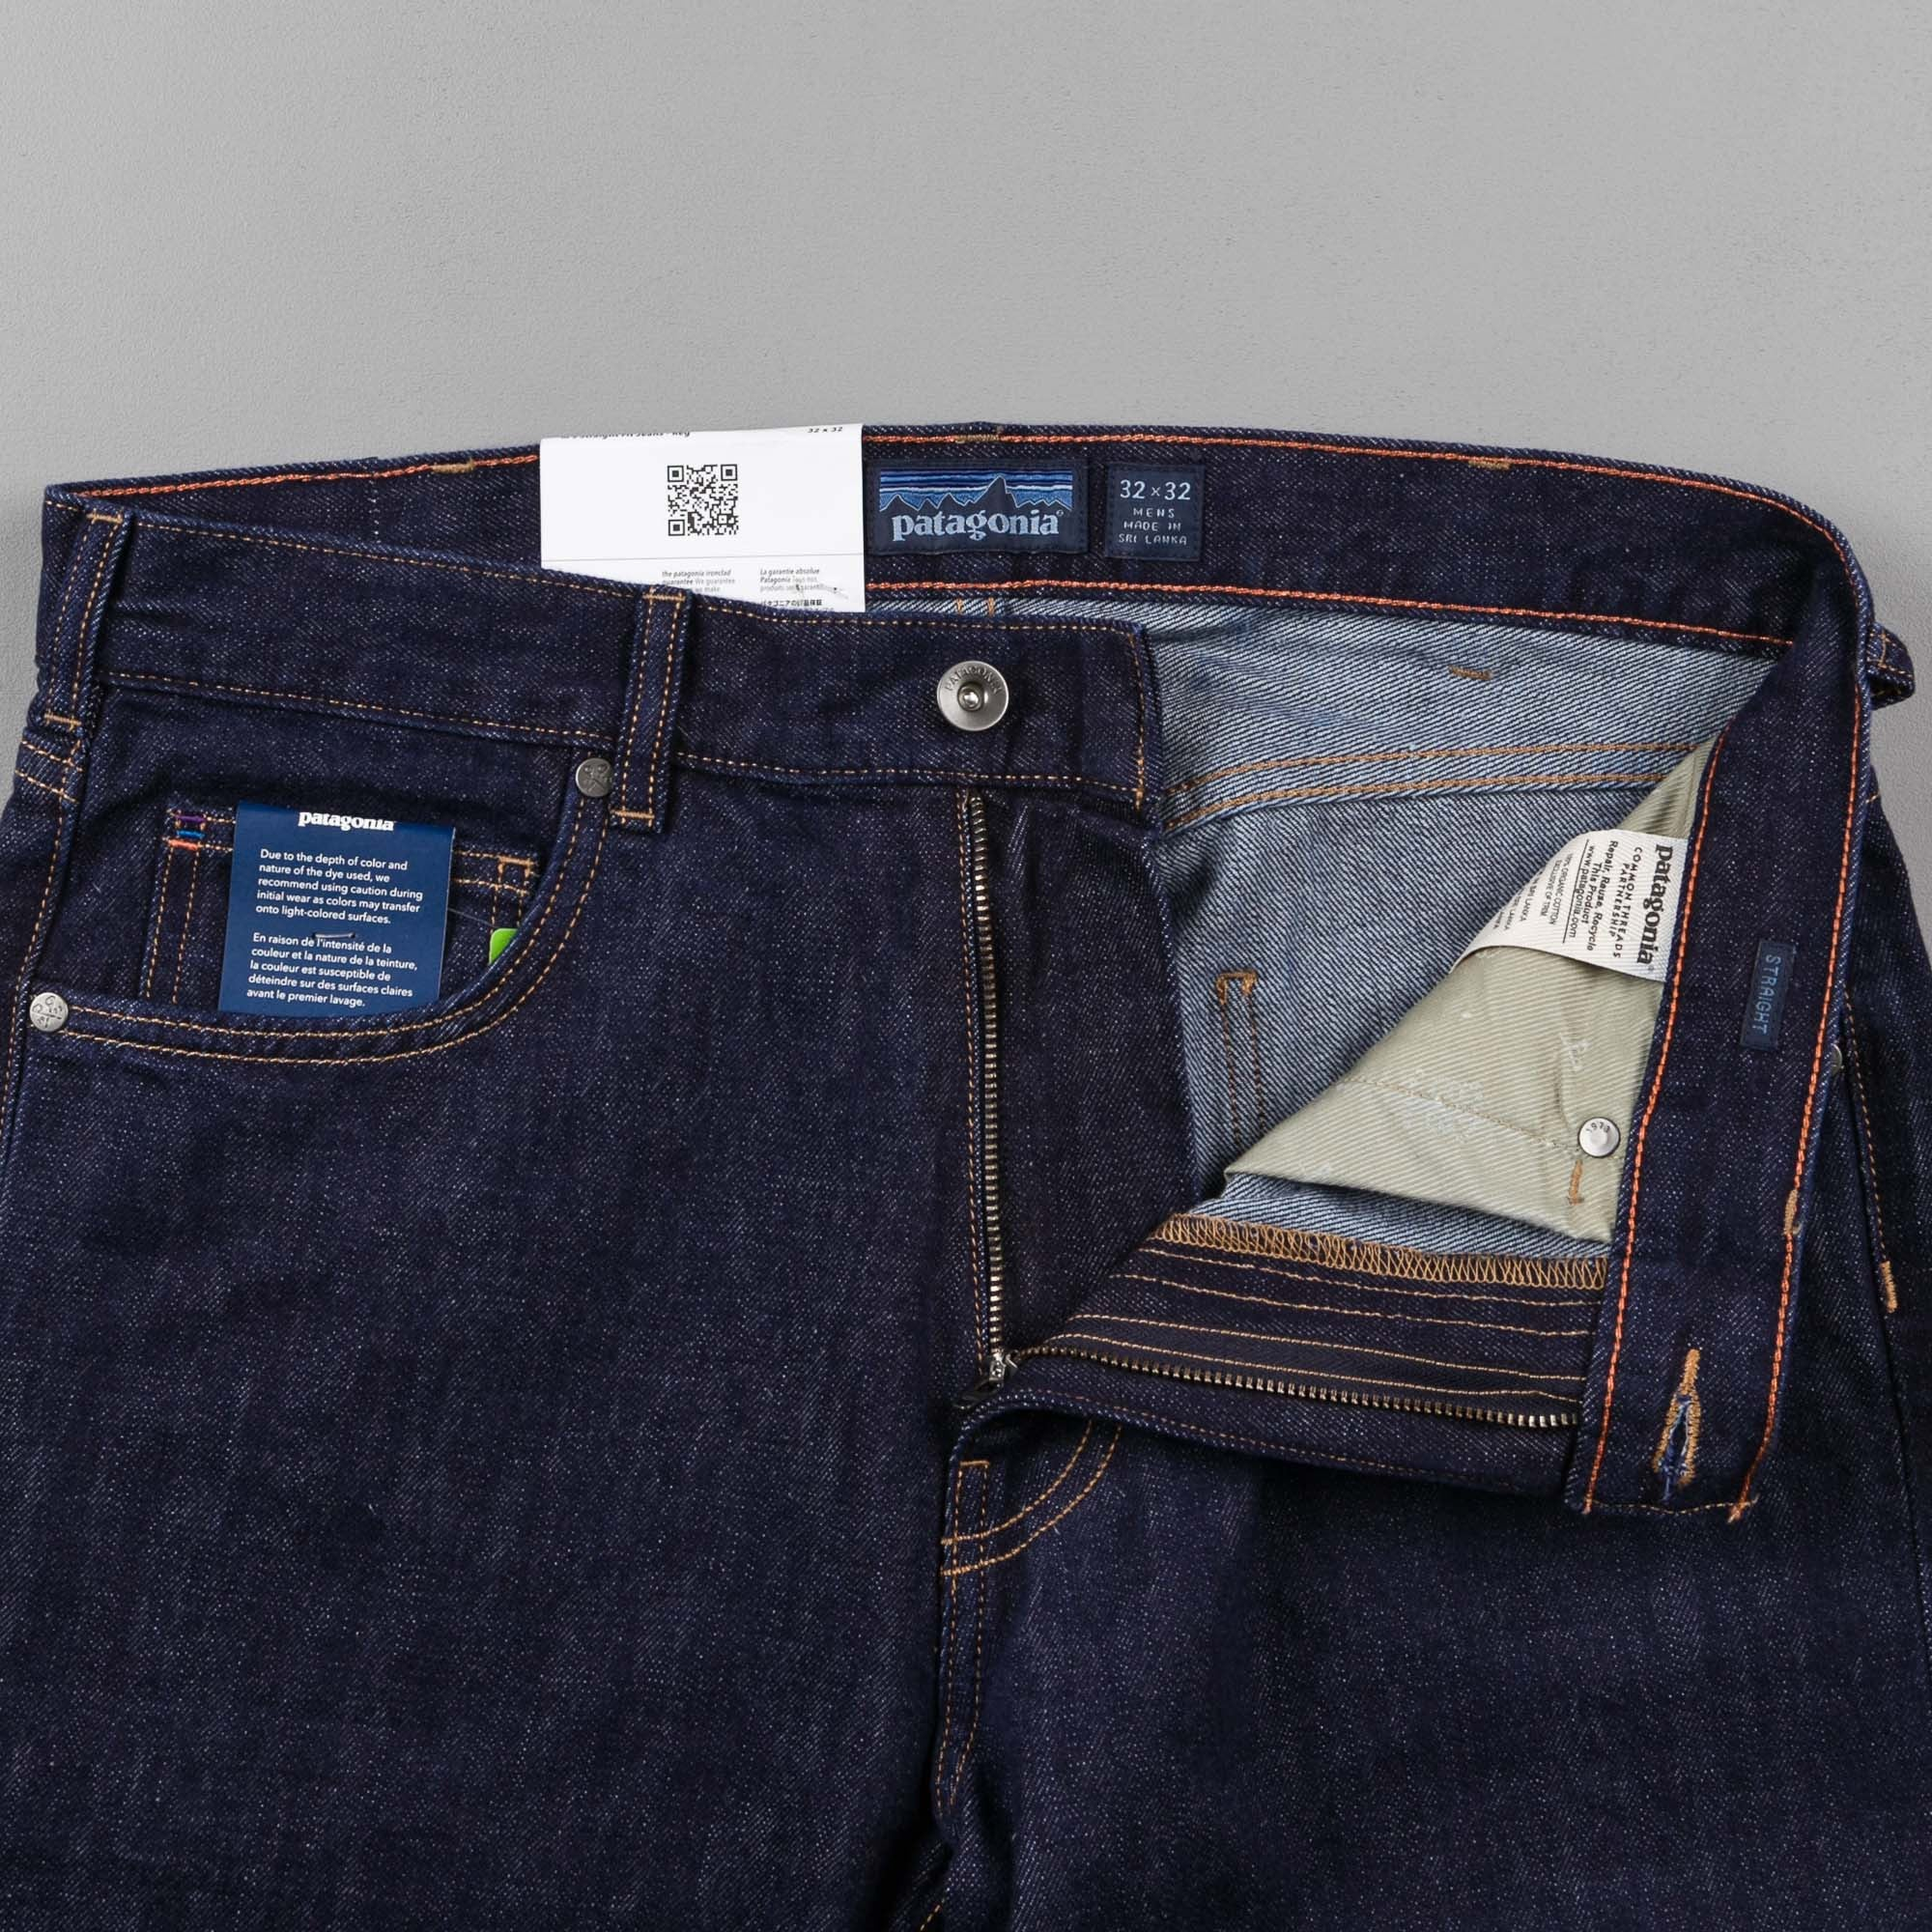 Patagonia Straight Fit Denim Jeans - Regular